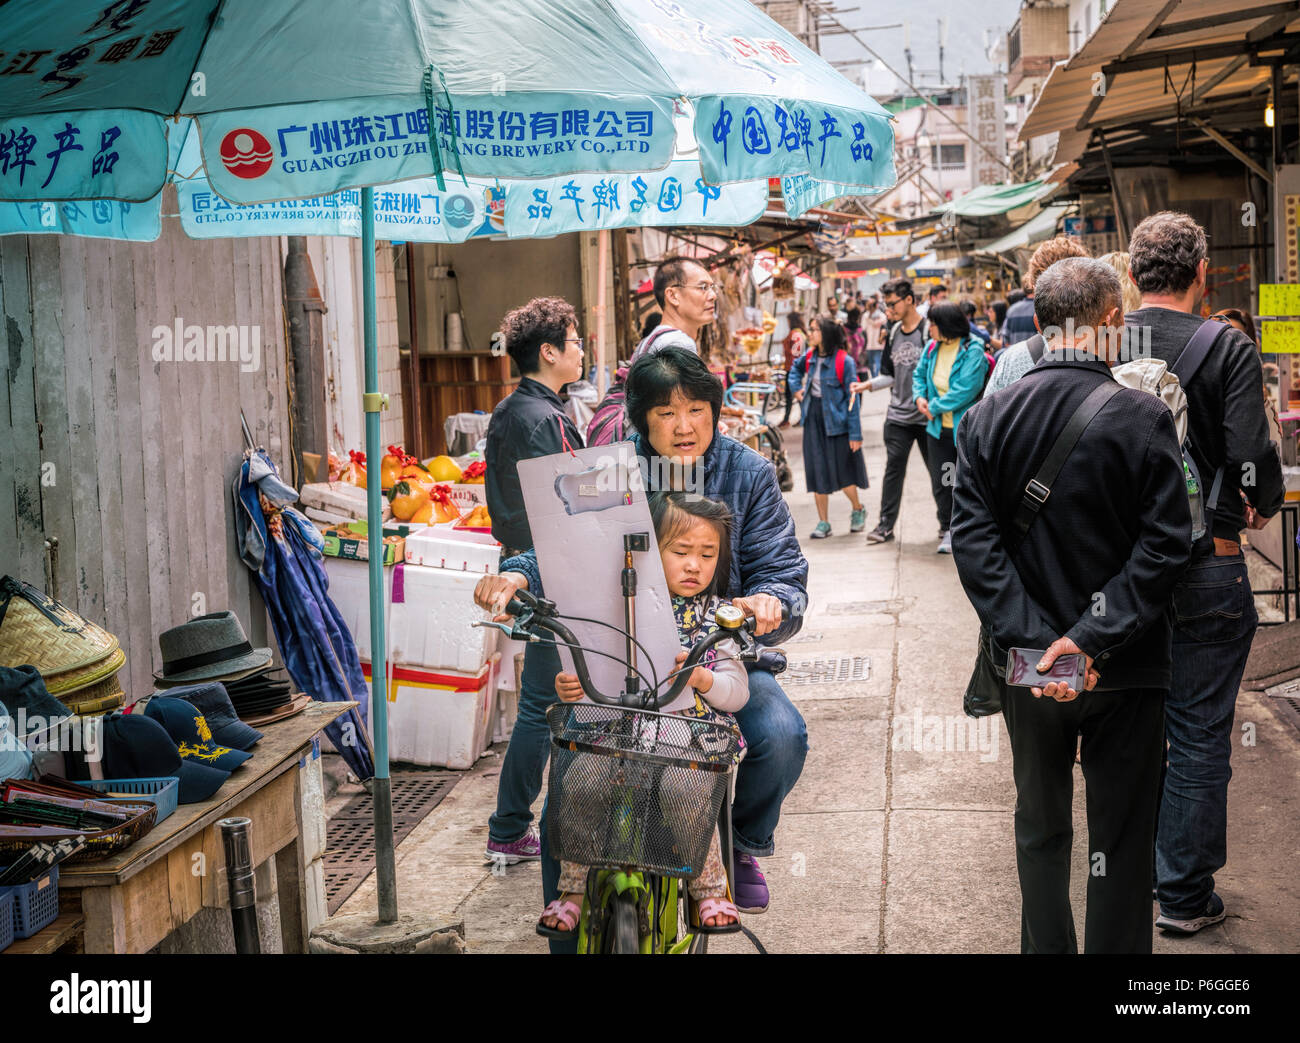 19 February 2018 - Lantau Island, Hong Kong. Asian woman cycling in the village street of Tai O with child on the bike. - Stock Image